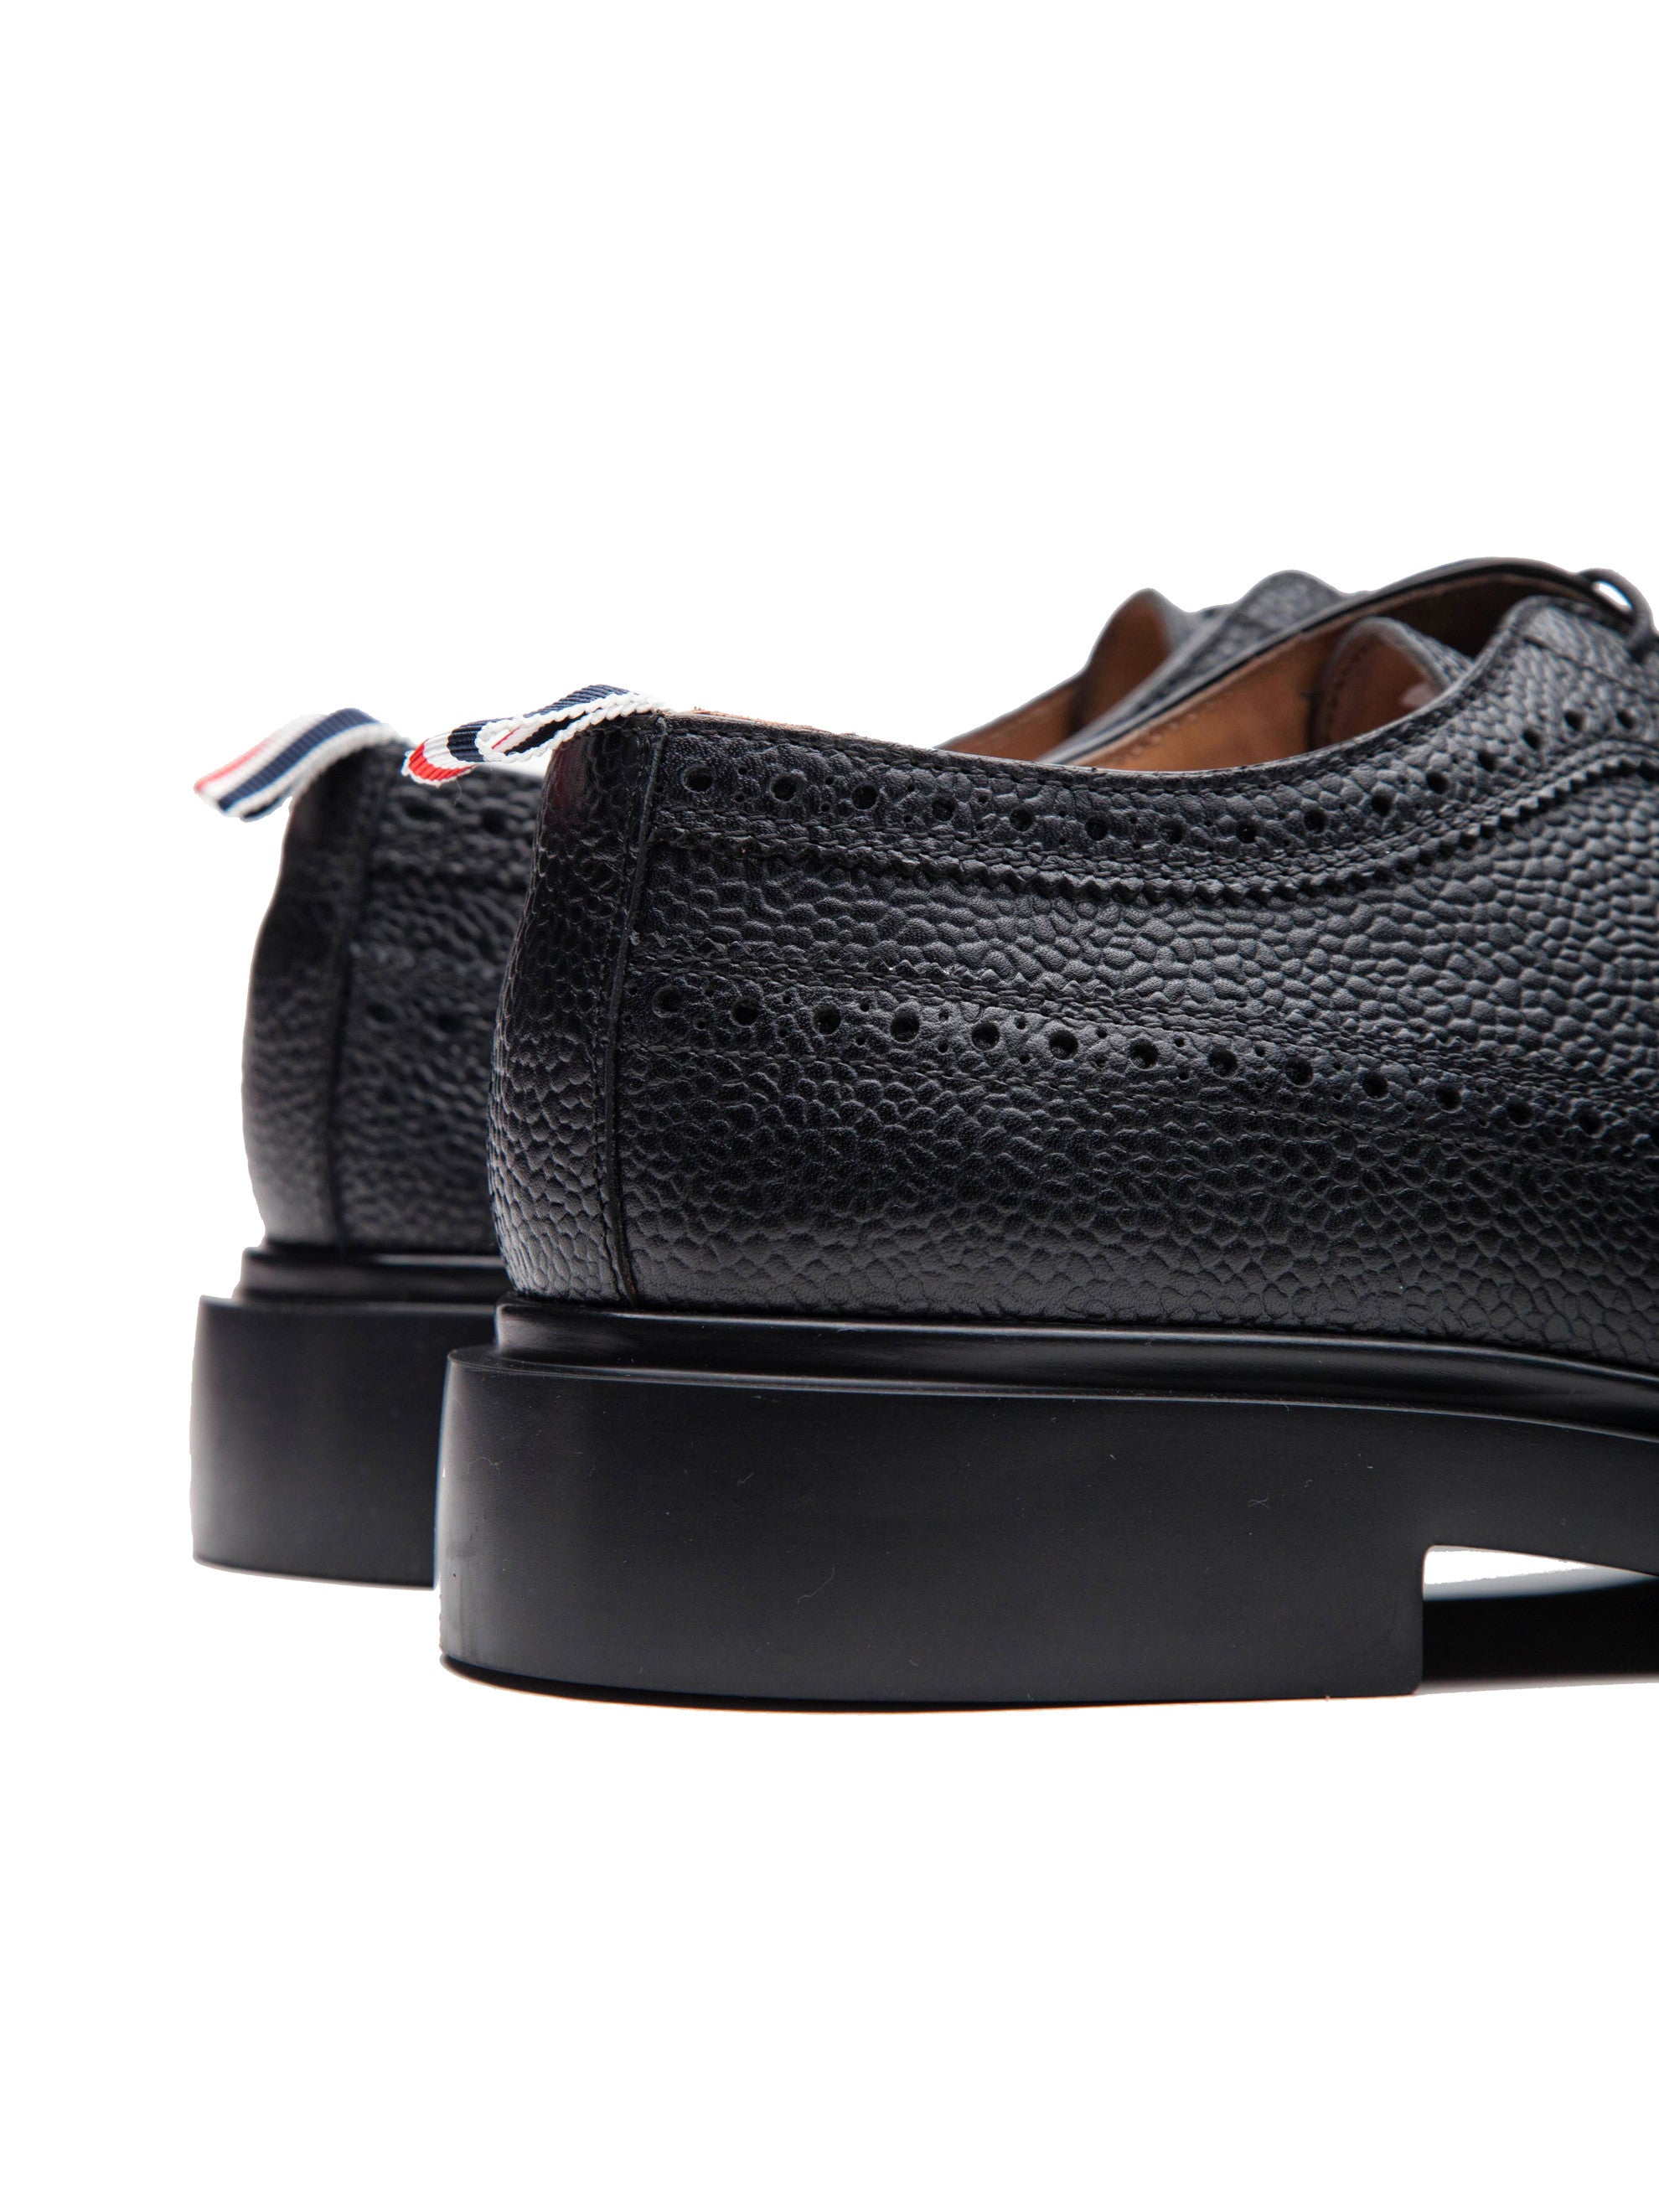 Black Classic Long Wing Brogue (Lightweight Rubber Sole/Pebble Grain) 3